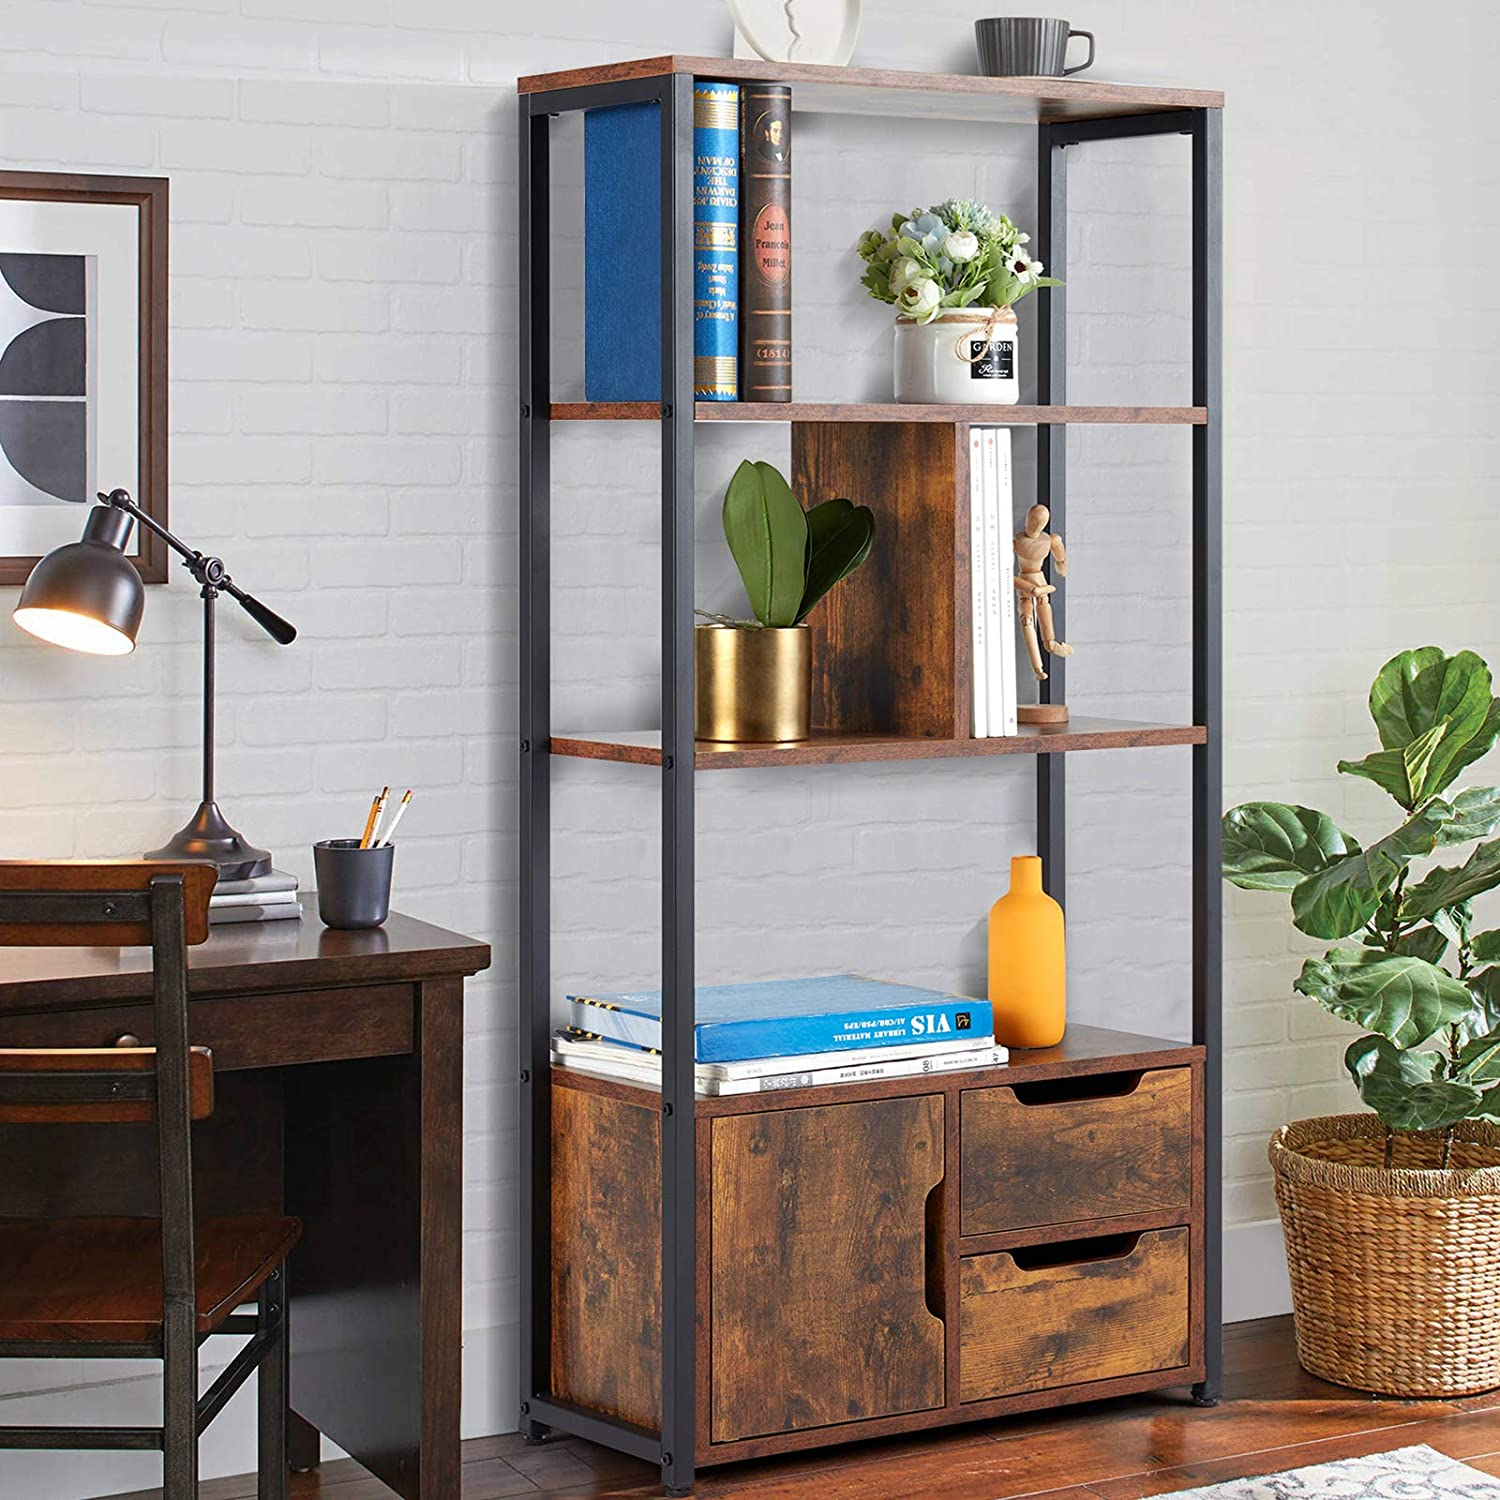 HOMHUM Industrial Bookcase with Cabinets, 3-Tier Freestanding Storage Bookshelf, Open Display Shelf, Wooden and Metal Organizer Rack Furniture for Living Room, Home Office